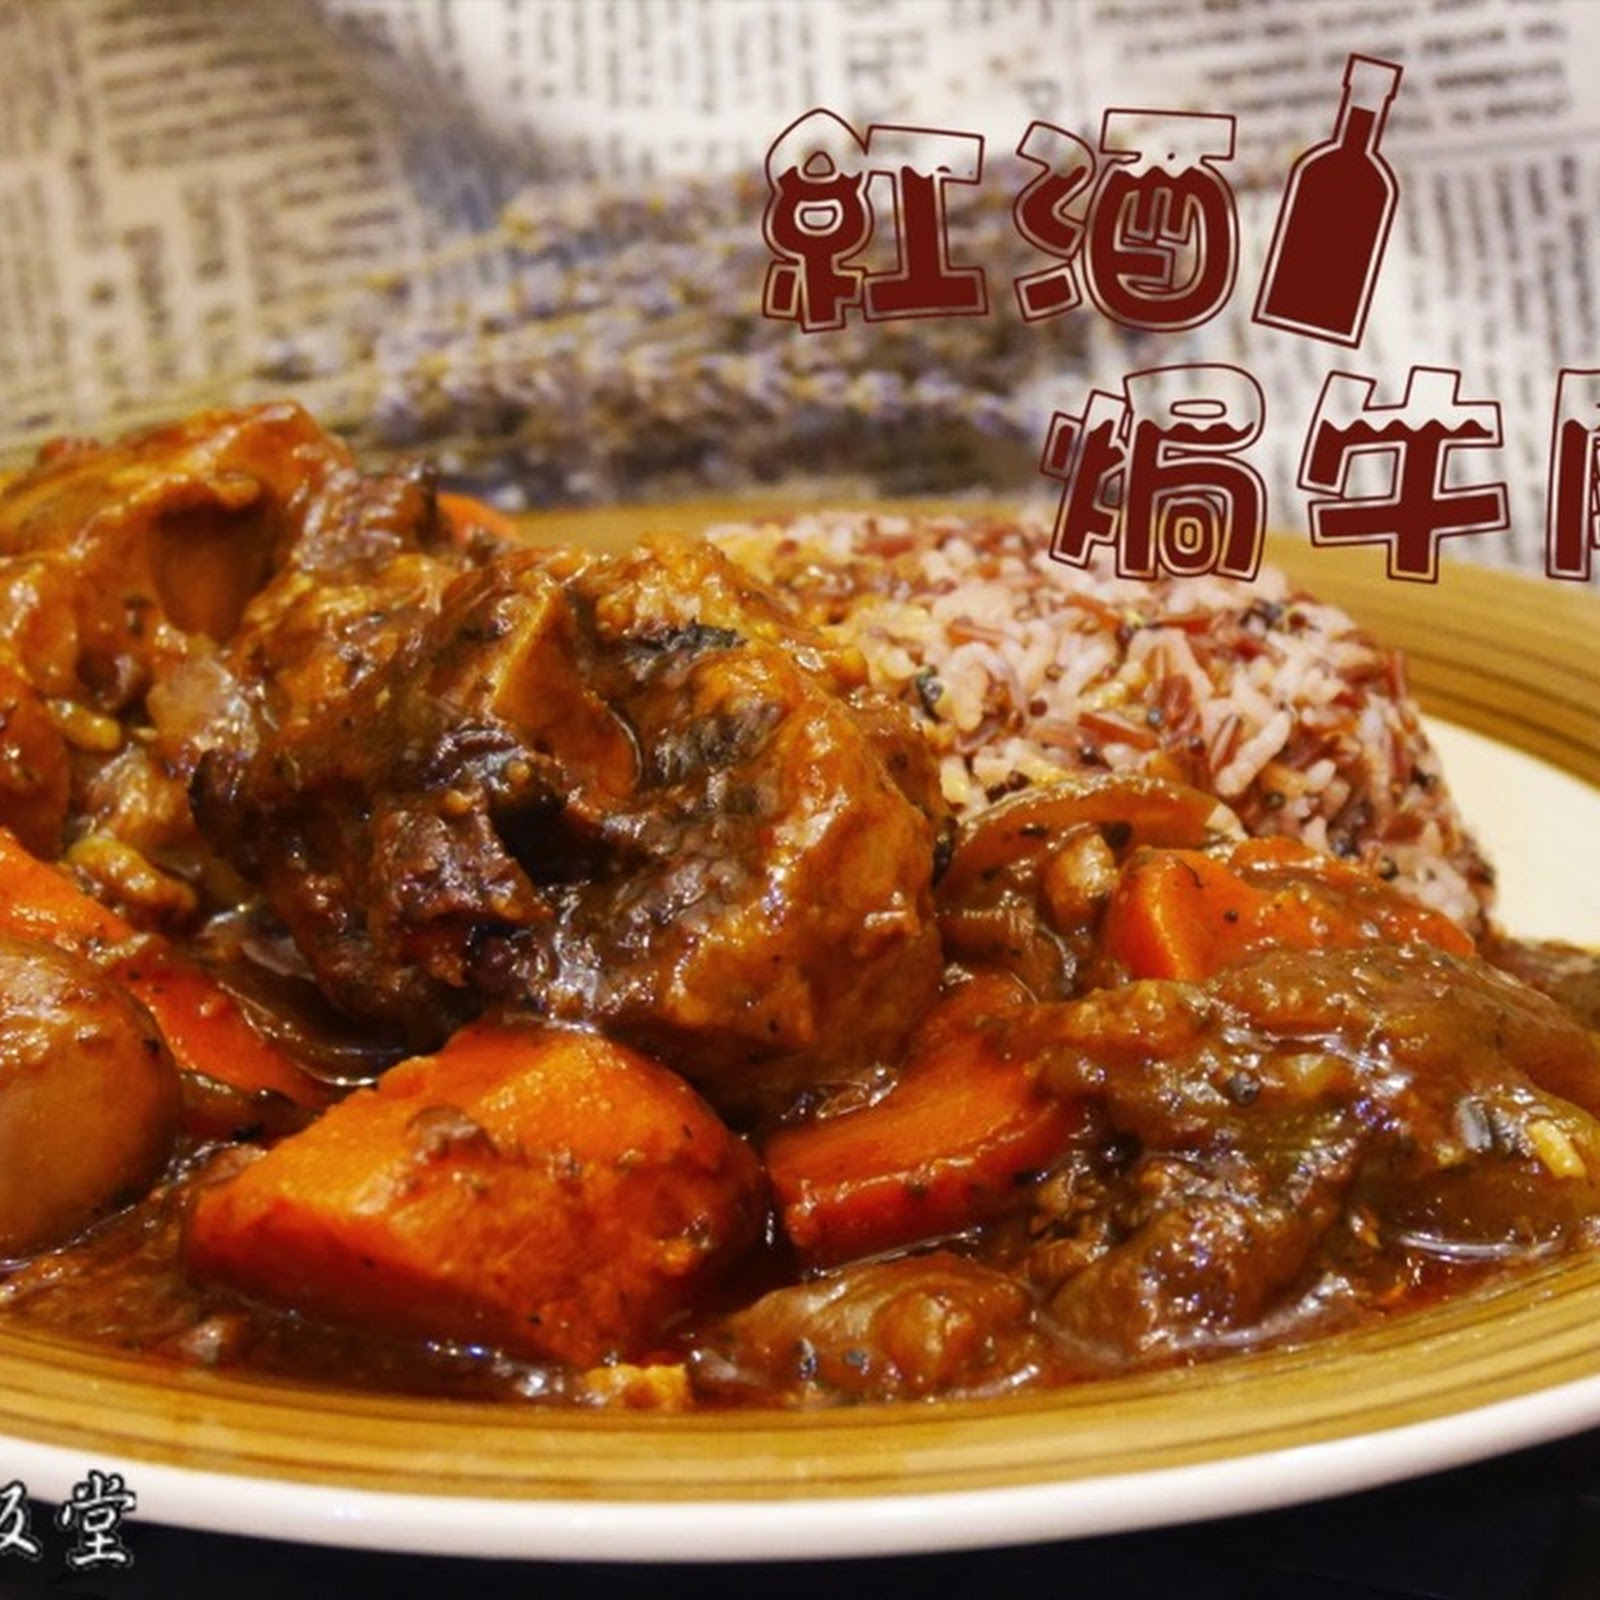 紅酒焗牛尾 純紅酒製作 Braised Oxtail in Red Wine 【老娘的草根飯堂 OldLady's Kitchen】